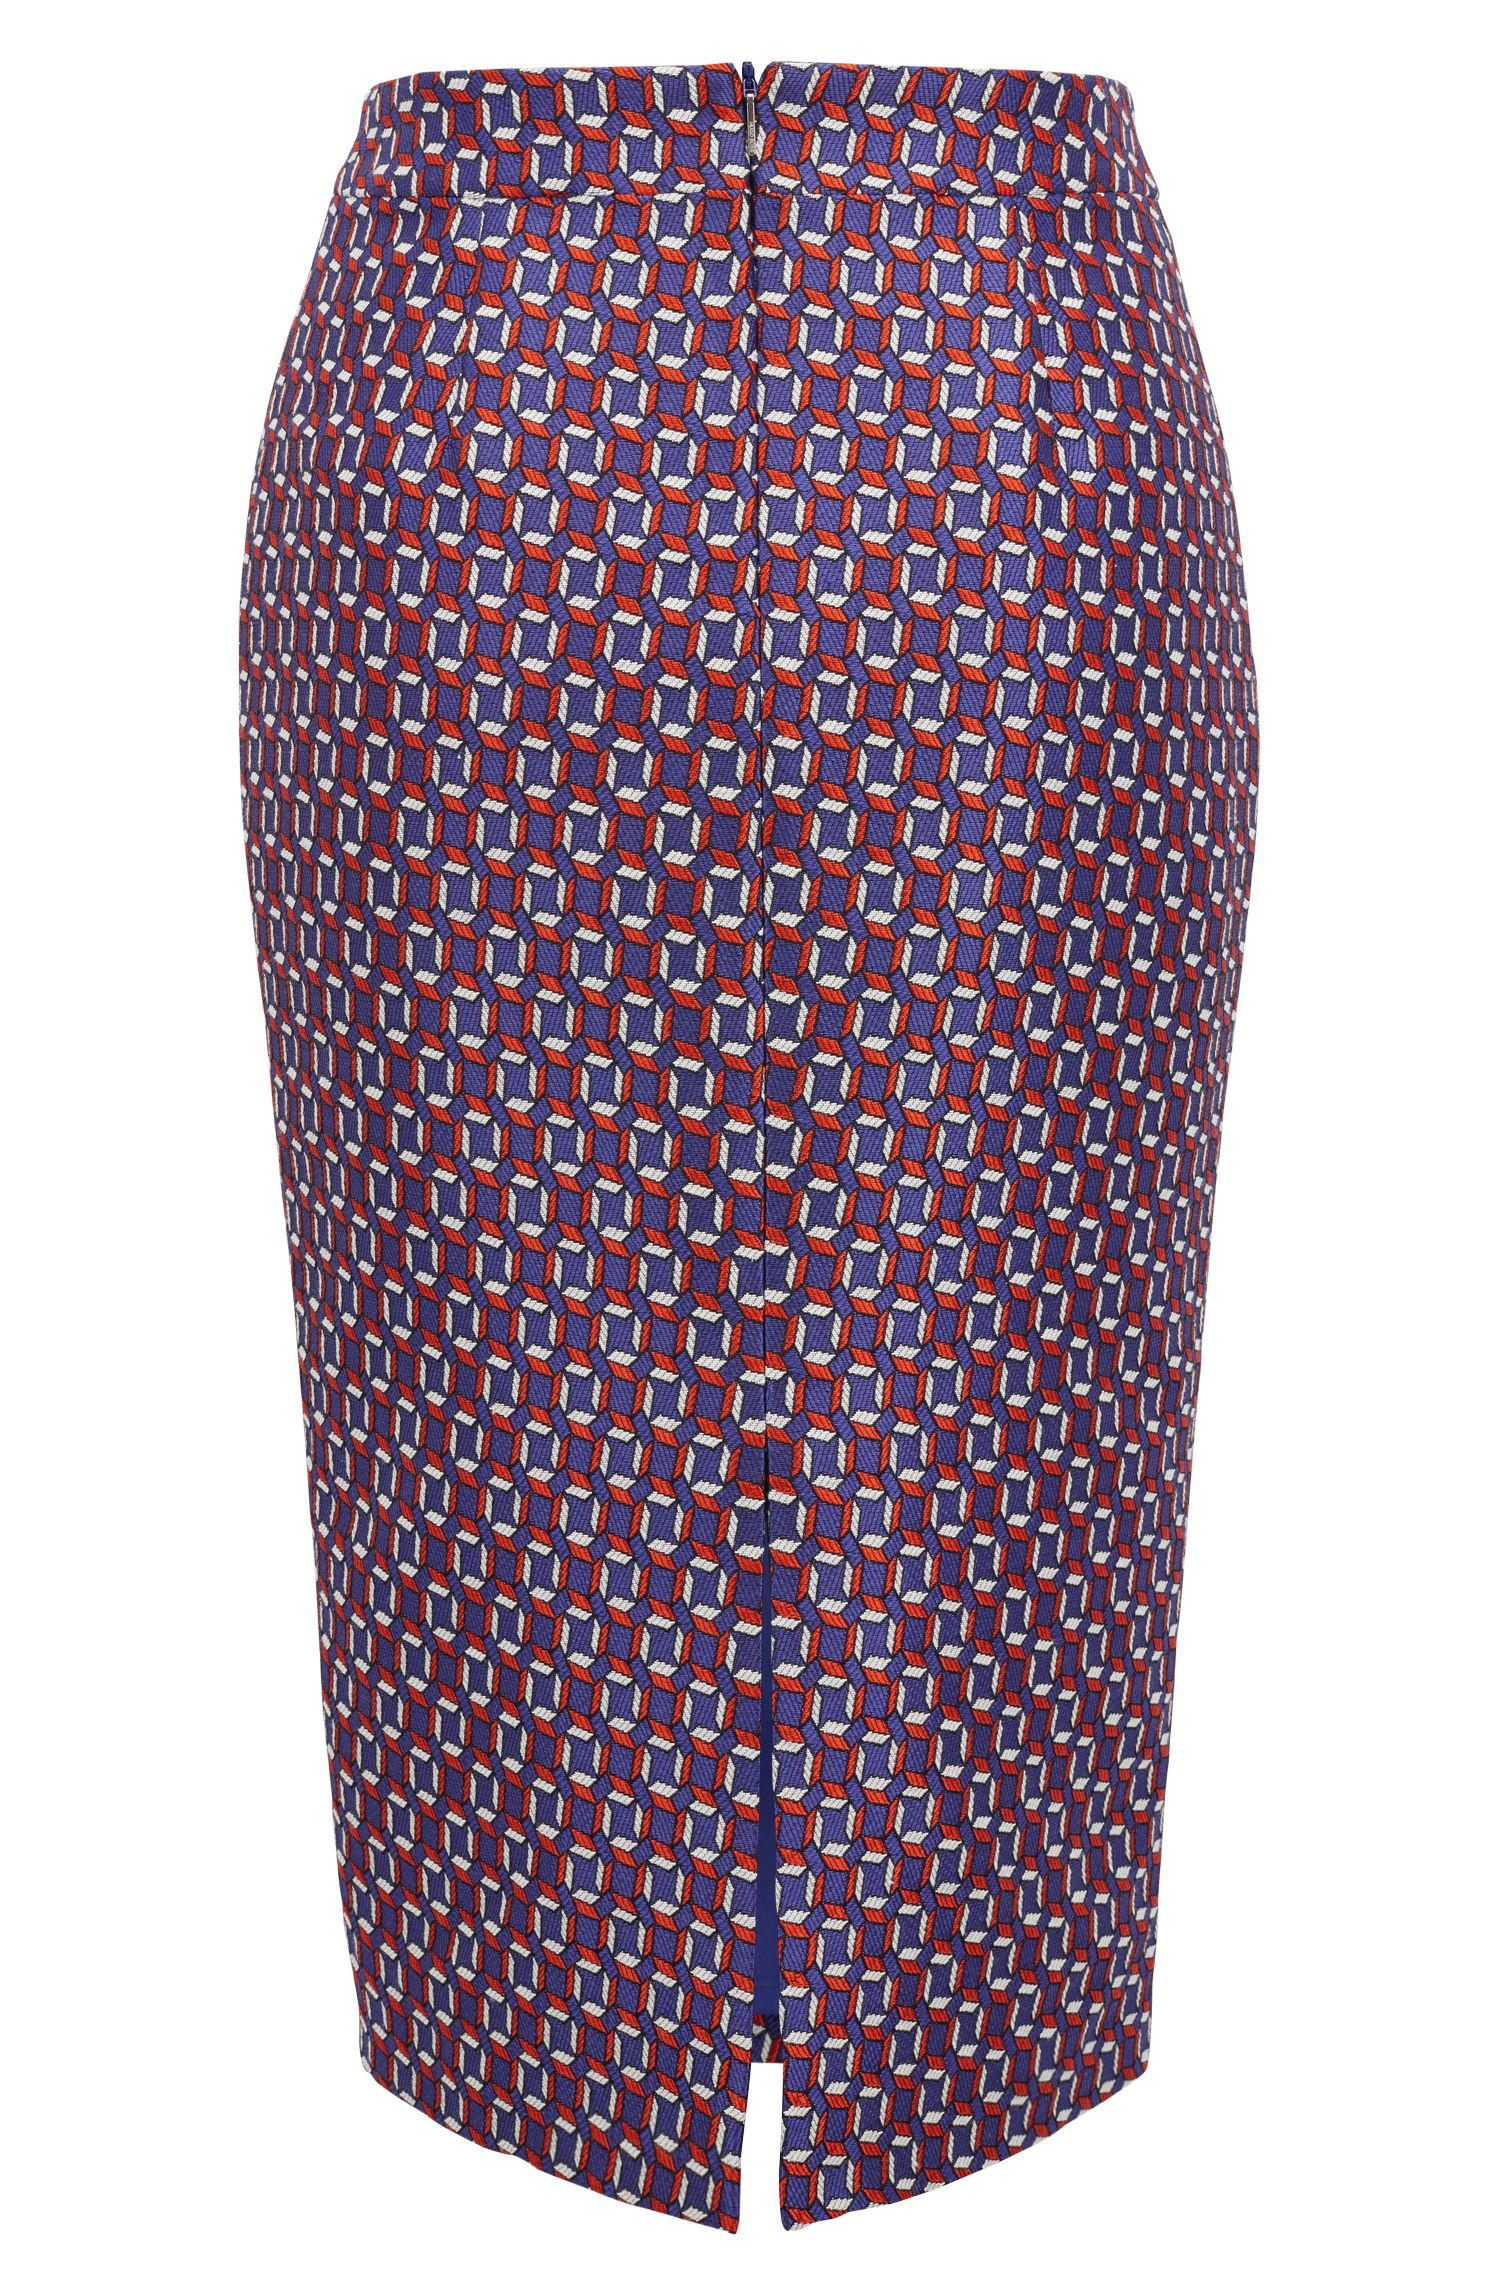 Pencil skirt with scarf-inspired pattern, Patterned